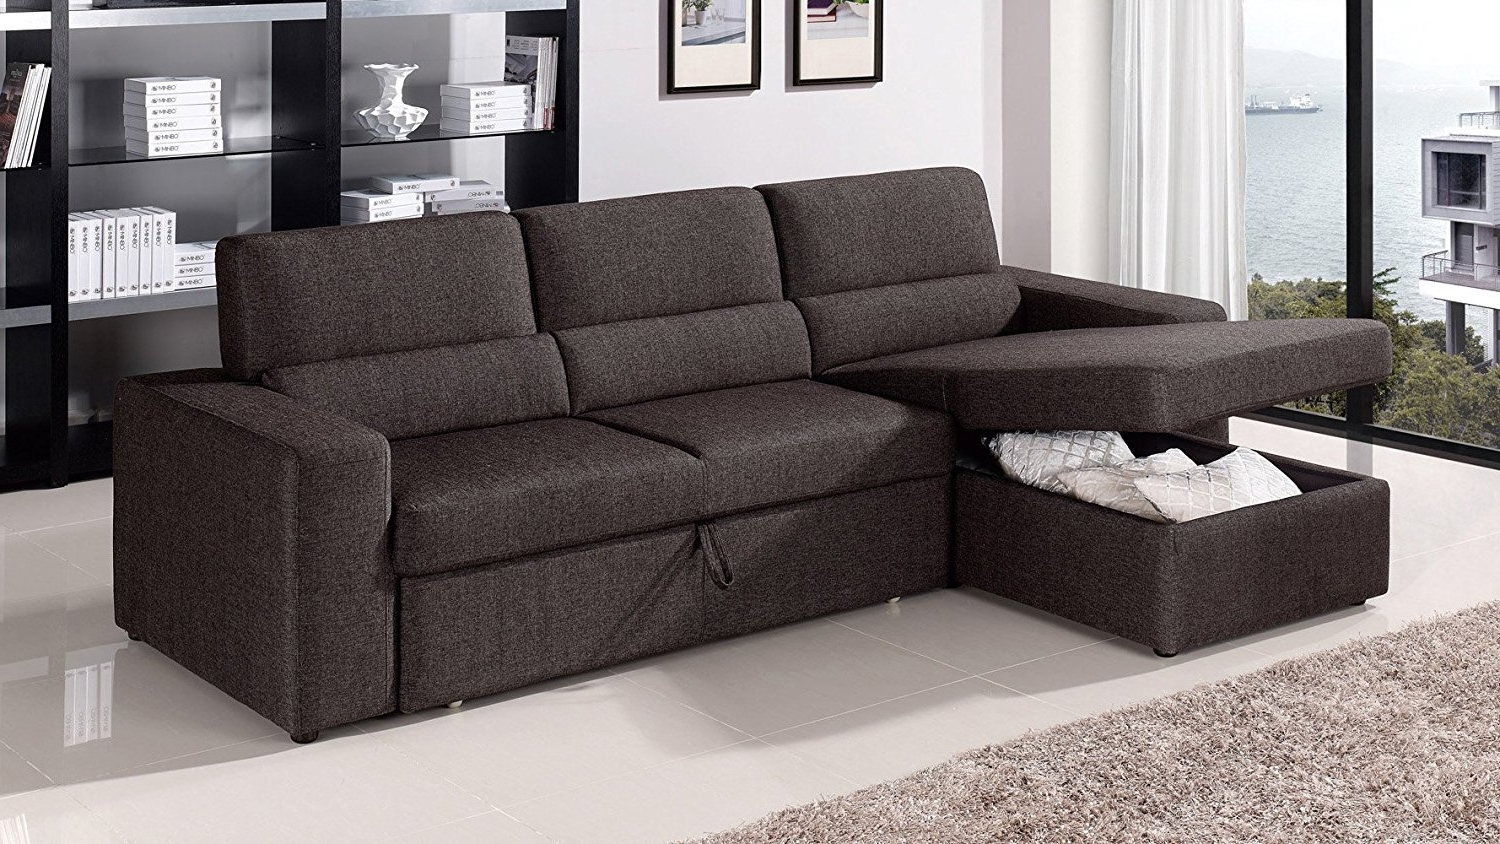 Sleeper Sofa Sectionals With Chaise Intended For Current Amazon: Black/brown Clubber Sleeper Sectional Sofa – Left (View 2 of 15)